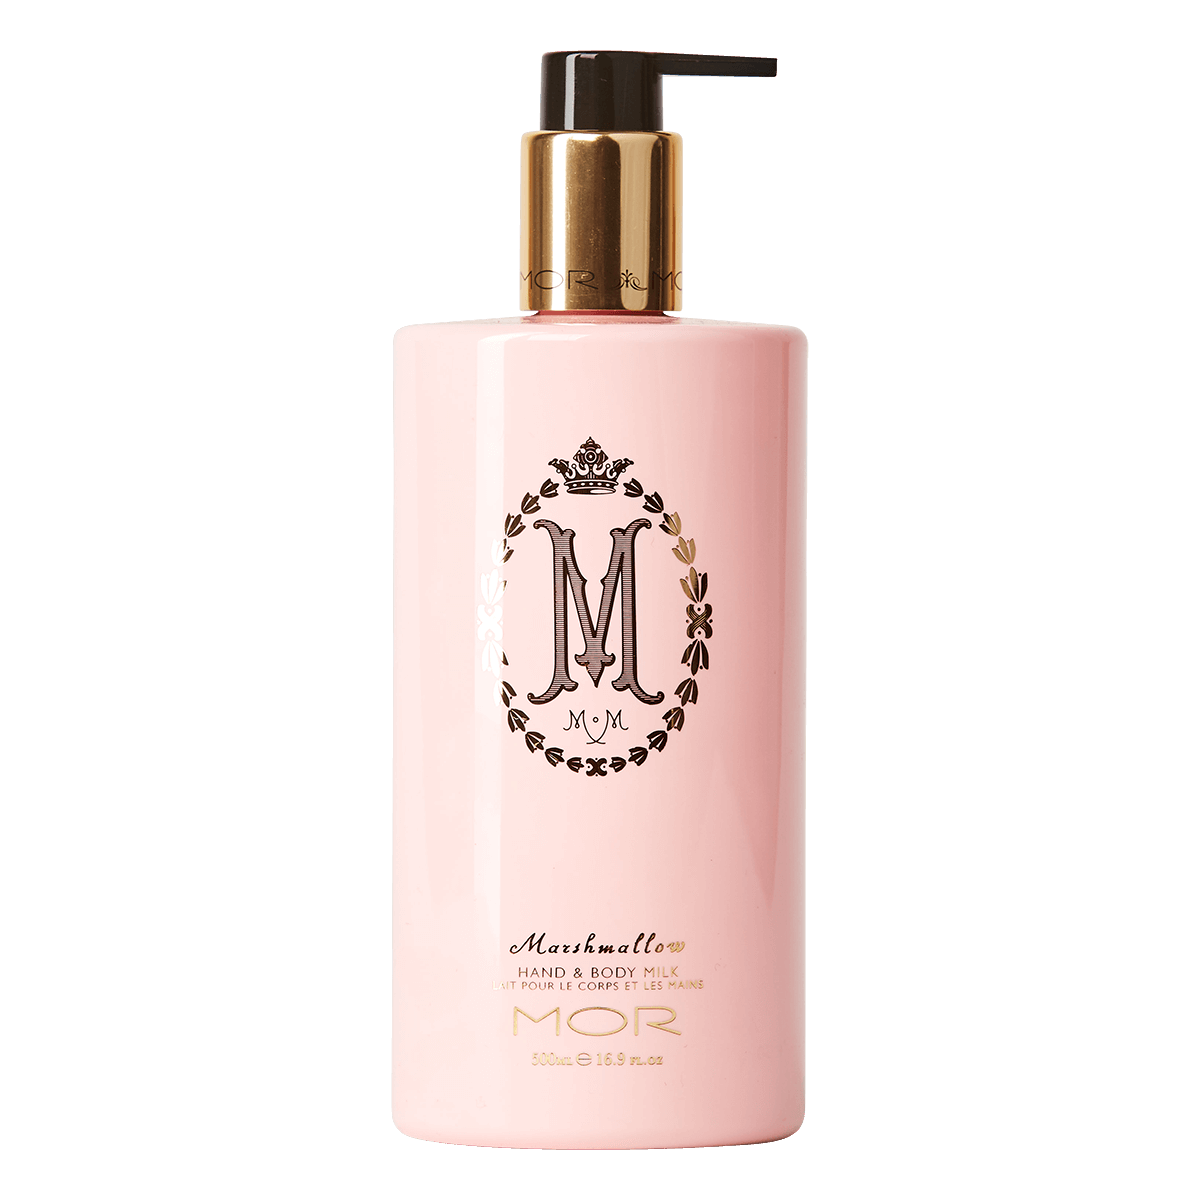 Mor - Hand & Body Milk Marshmallow 500ml Pump